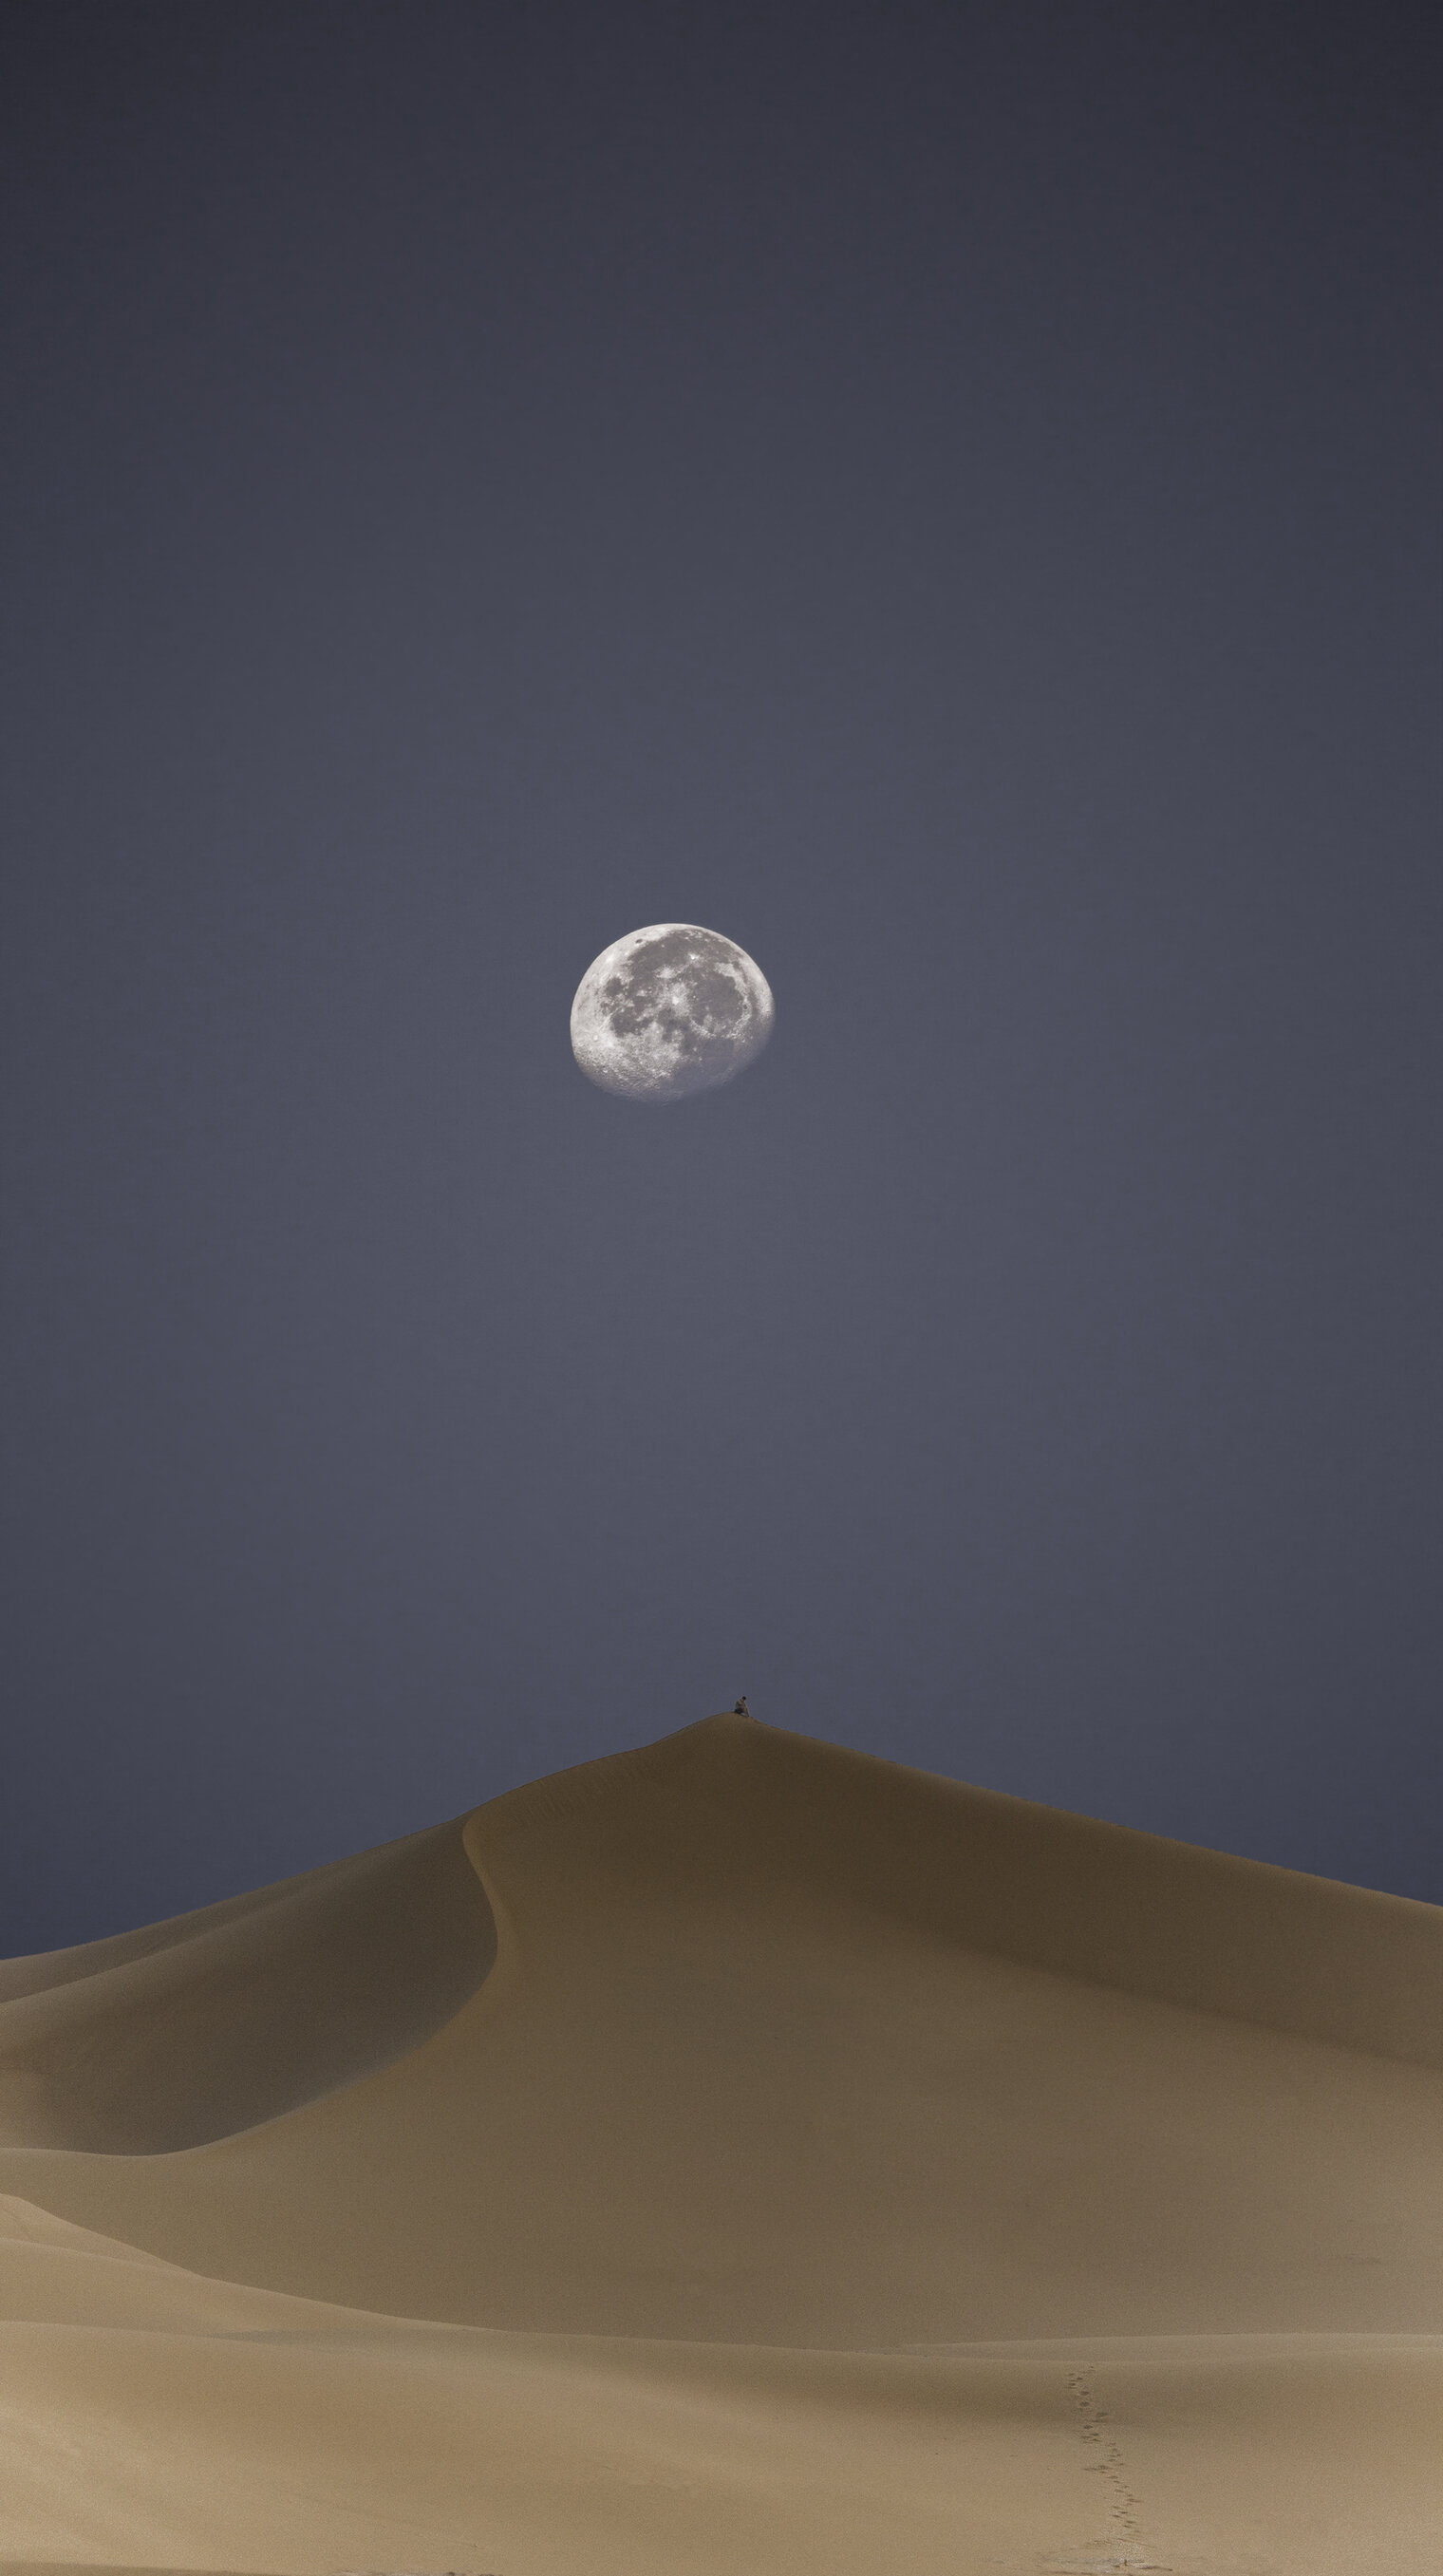 I ran around the other side of the dune to catch this image while the Moon was still high in the sky as the sun was rising.